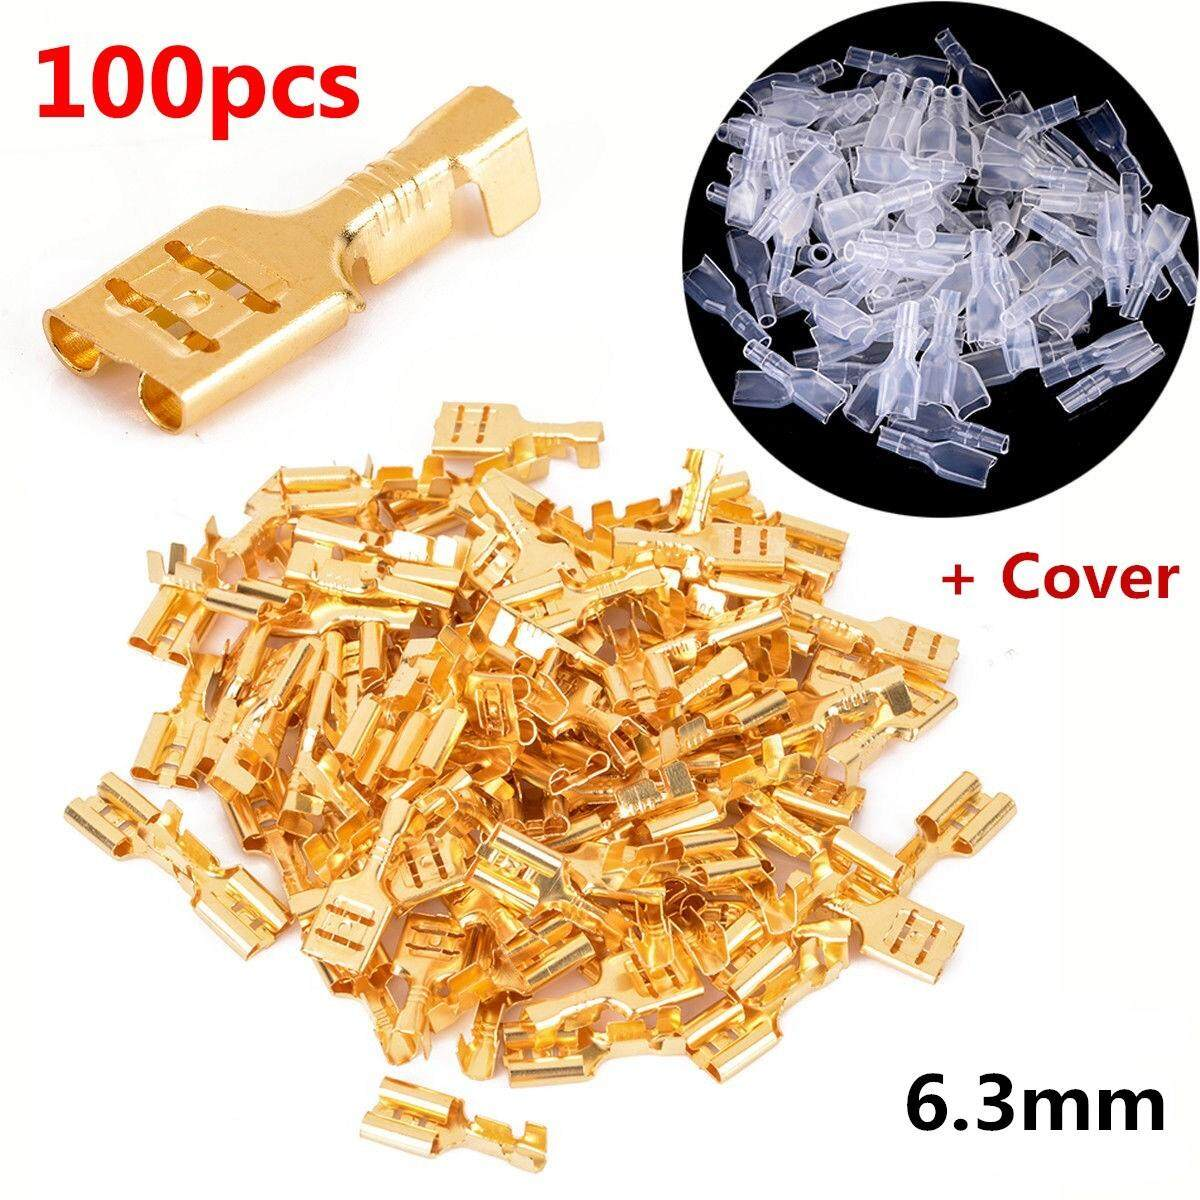 100pcs Copper 6.3mm Female Spade Crimp Terminals 22~16awg 0.5mm Thickness By Motorup.